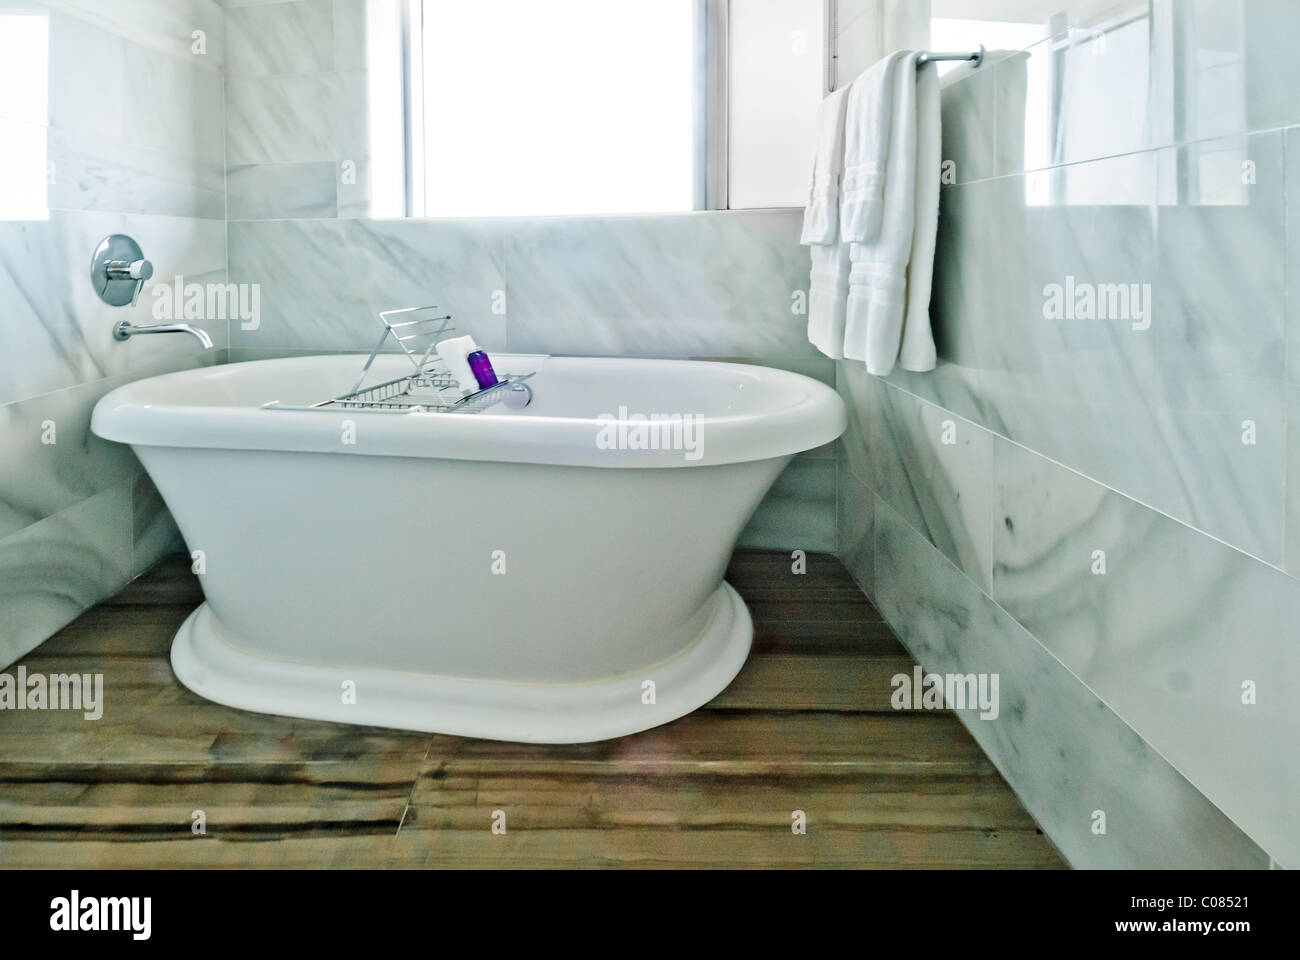 Bathtub In Tempo Miami, A Rock Resorts Luxury Hotel Overlooking Biscayne  Bay In Miami, Florida, USA